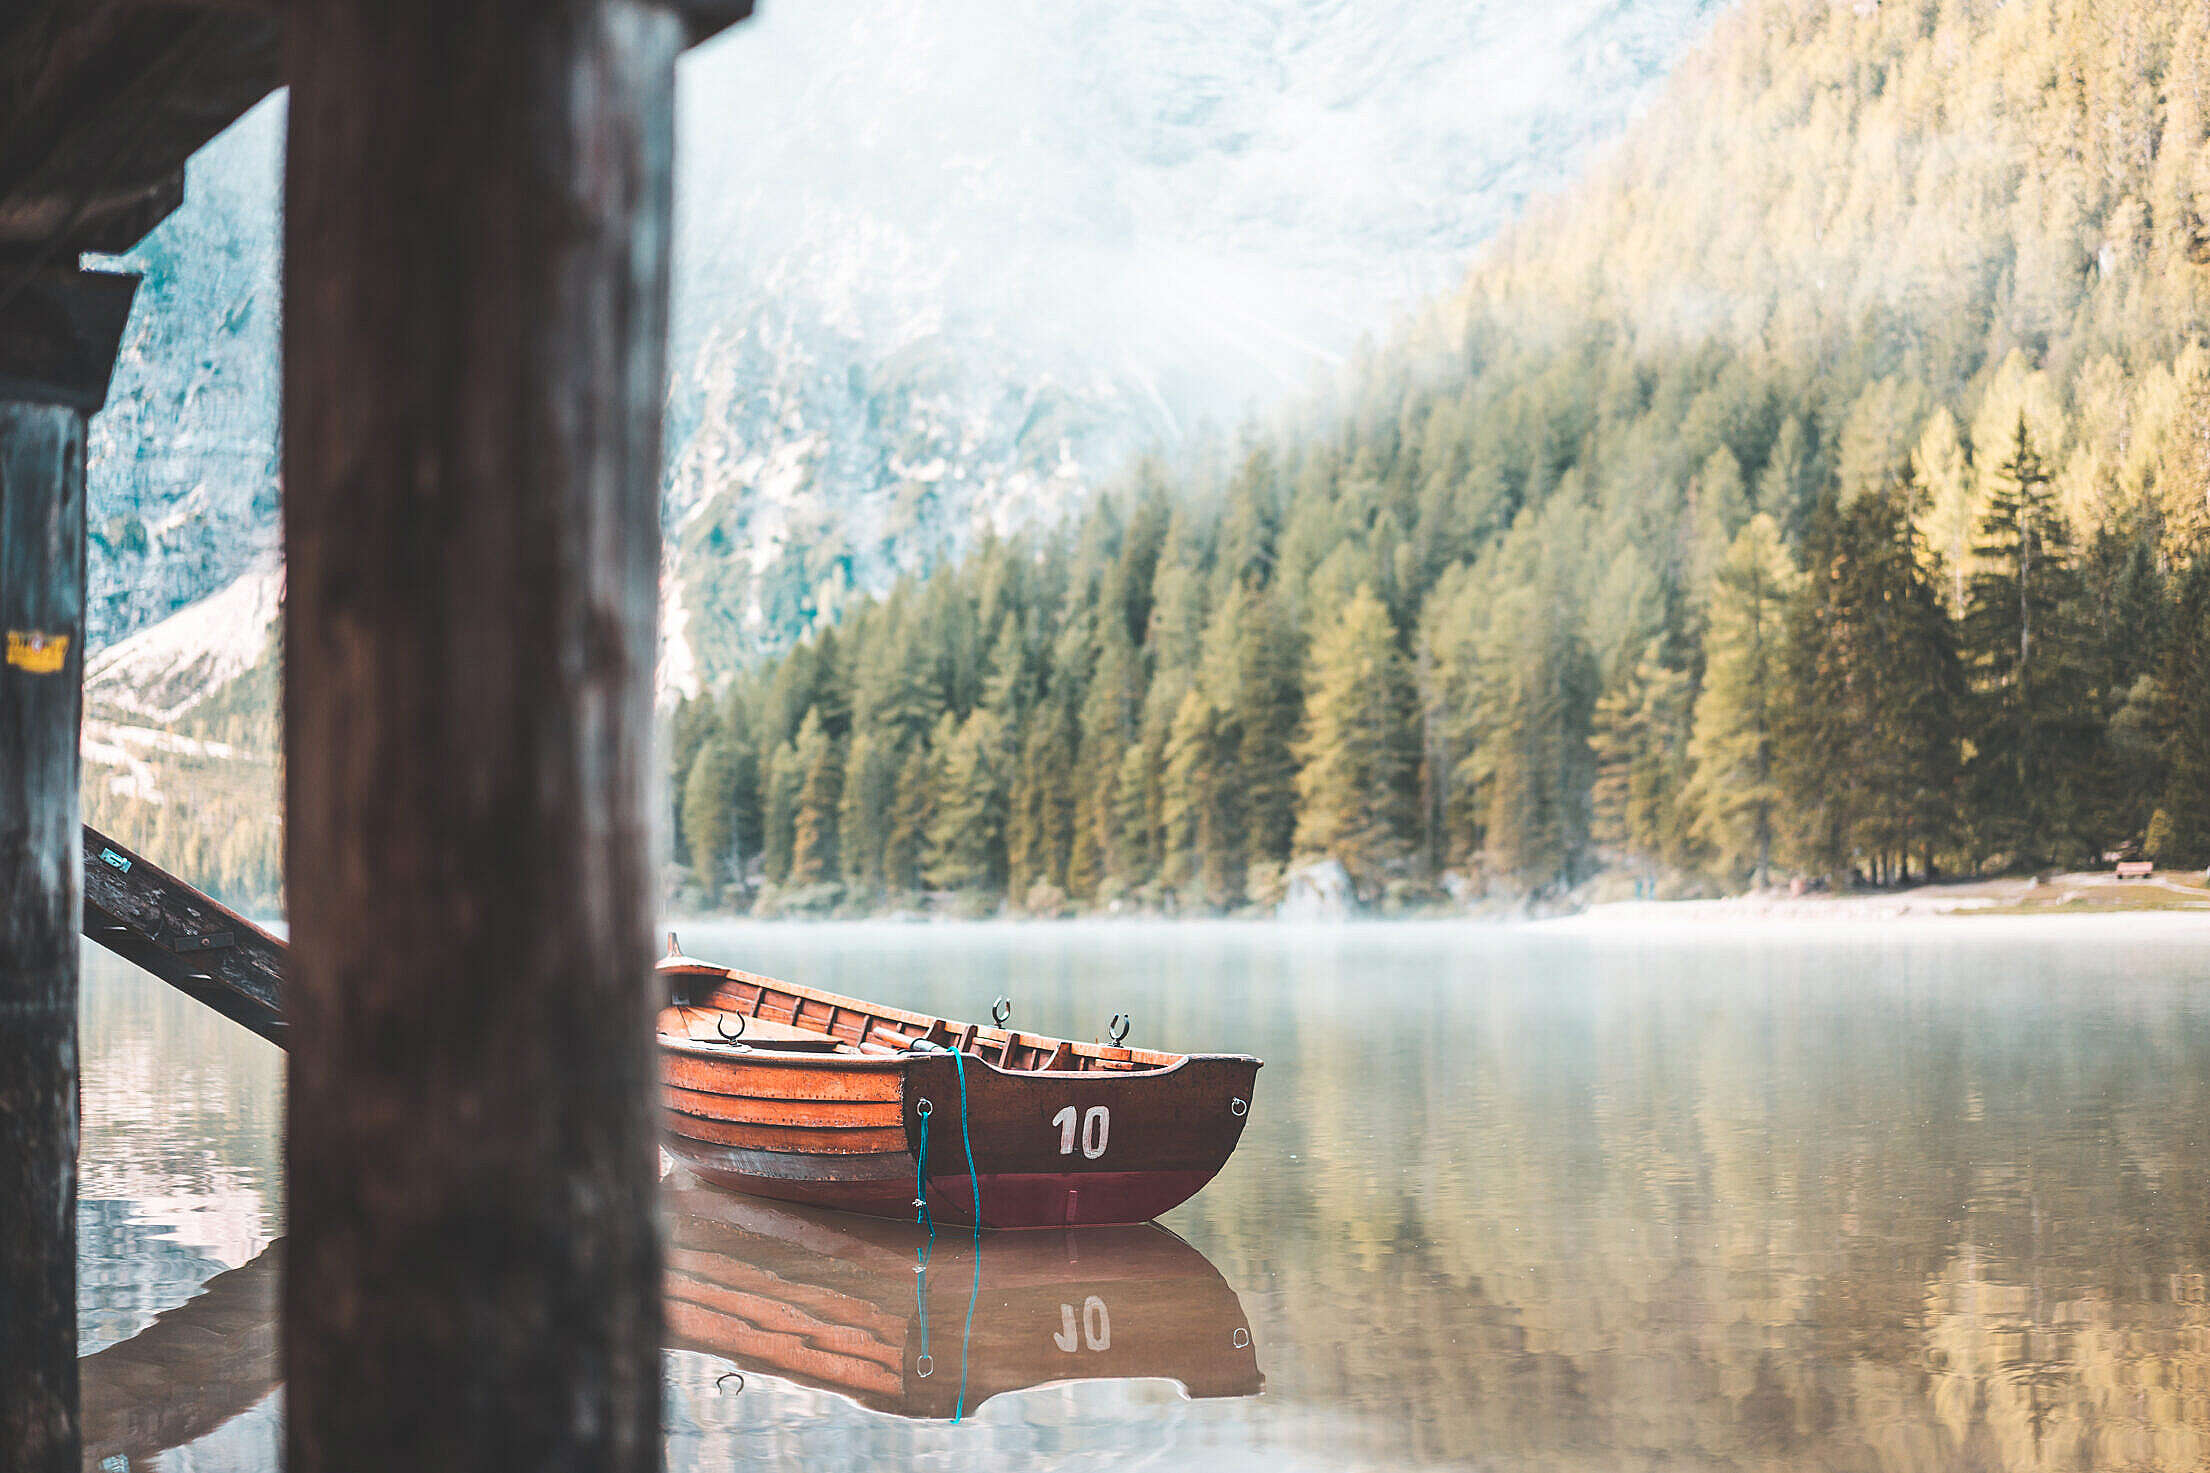 Wooden Rowing Boat on a Lake in the Morning Free Stock Photo